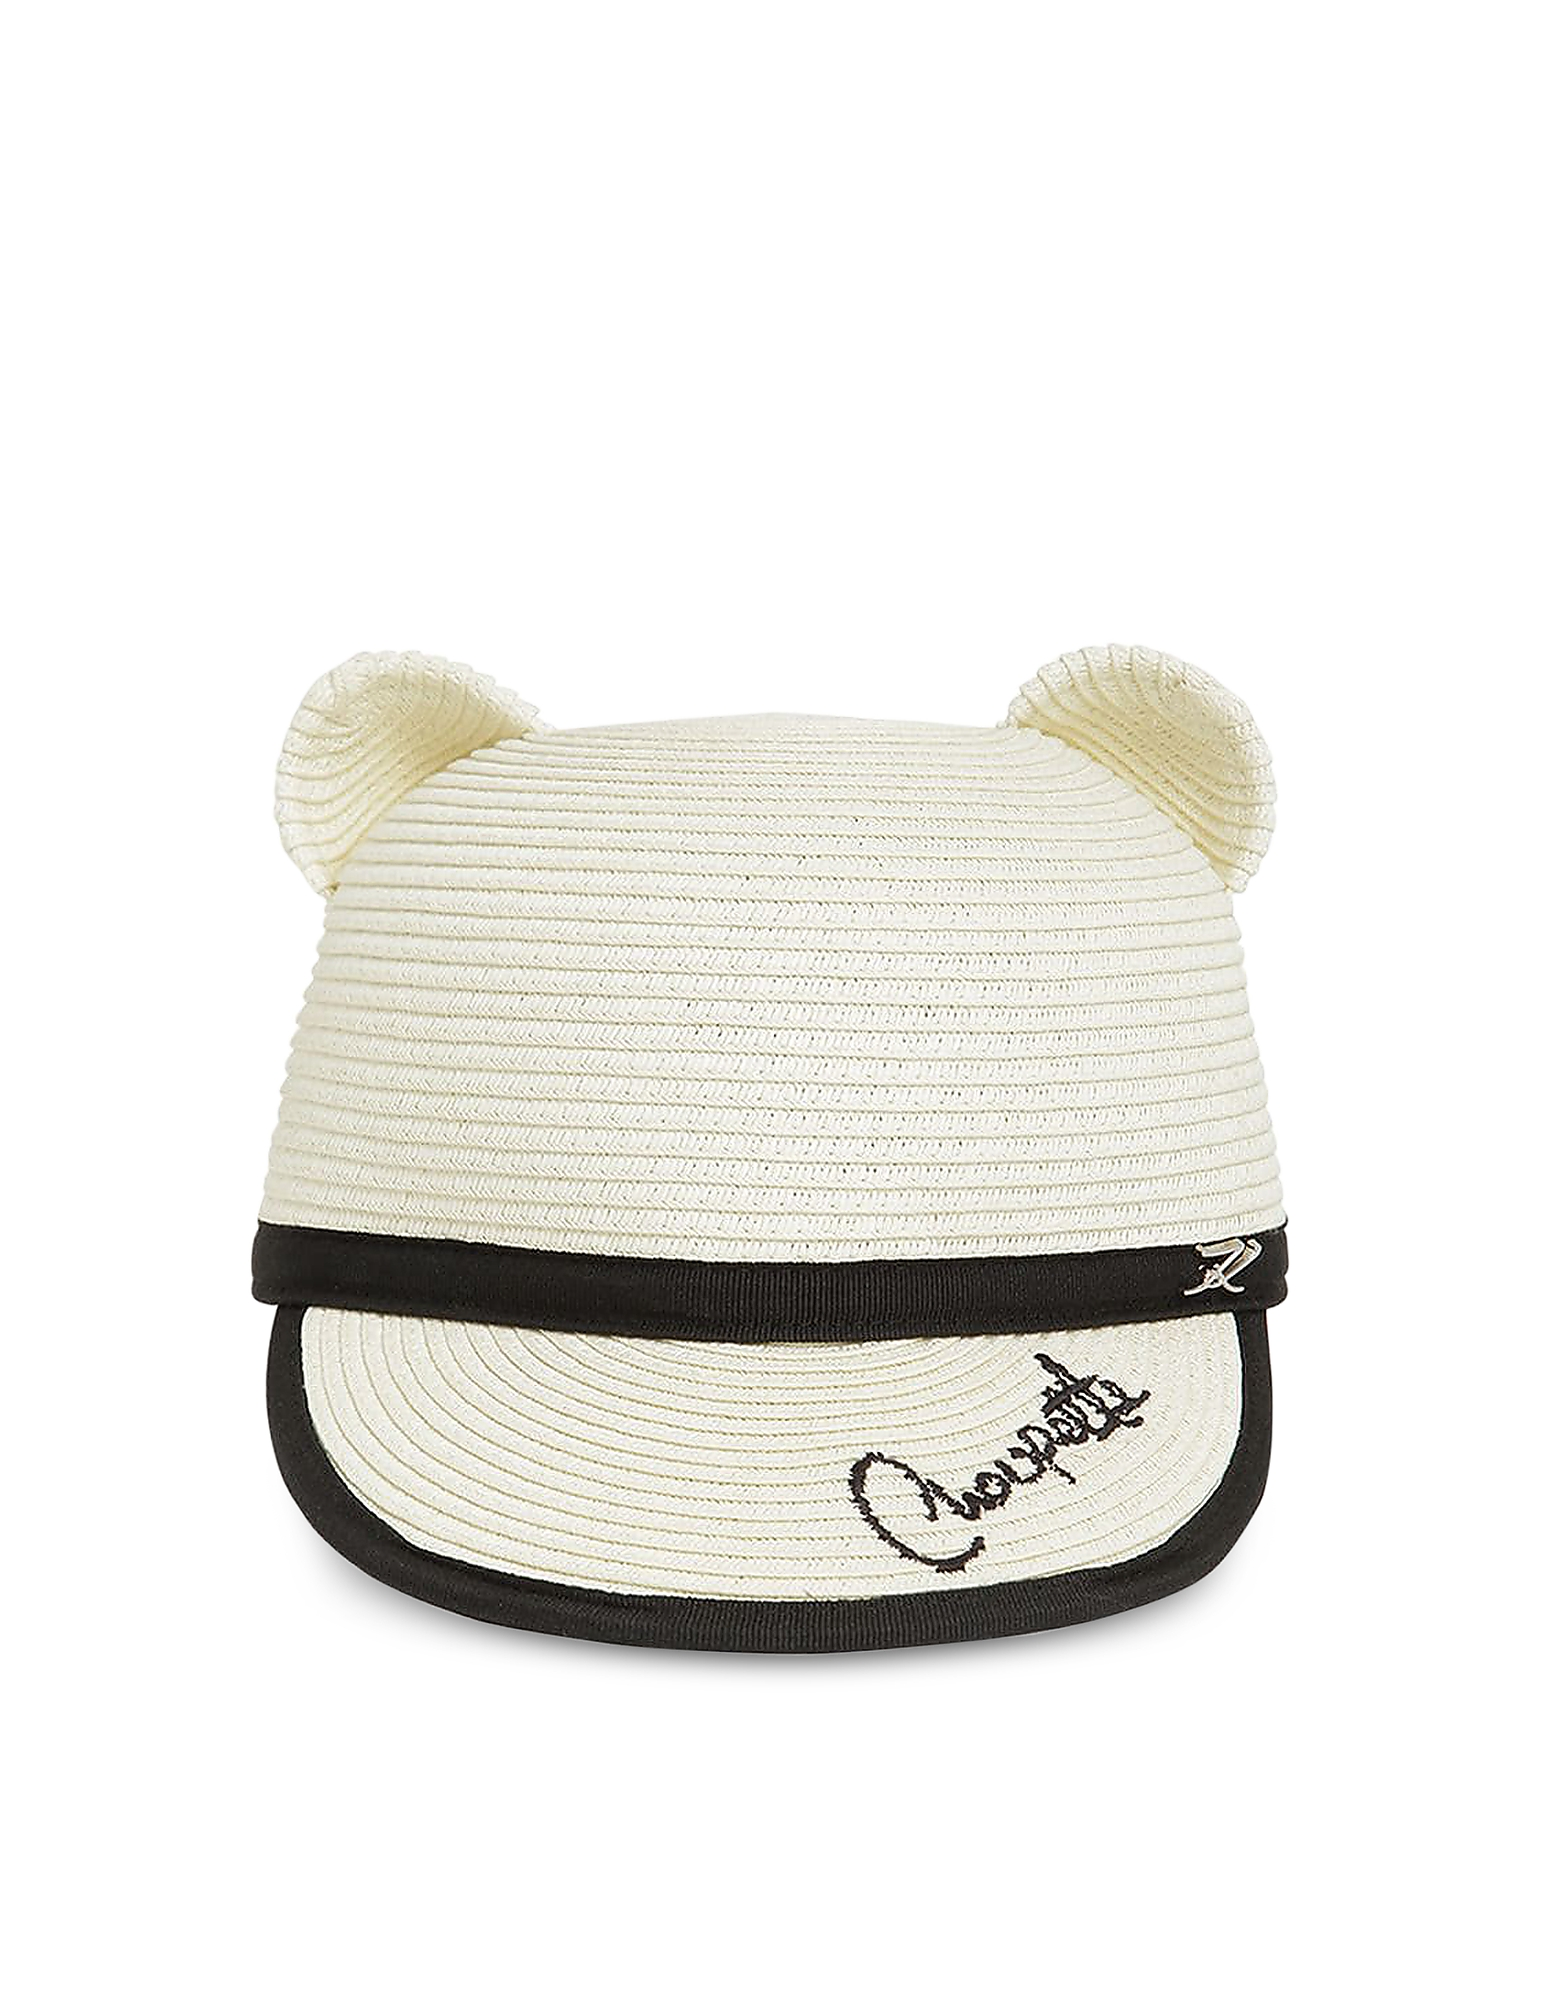 Karl Lagerfeld Accessories CHOUPETTE NATURAL STRAW EARS CAP